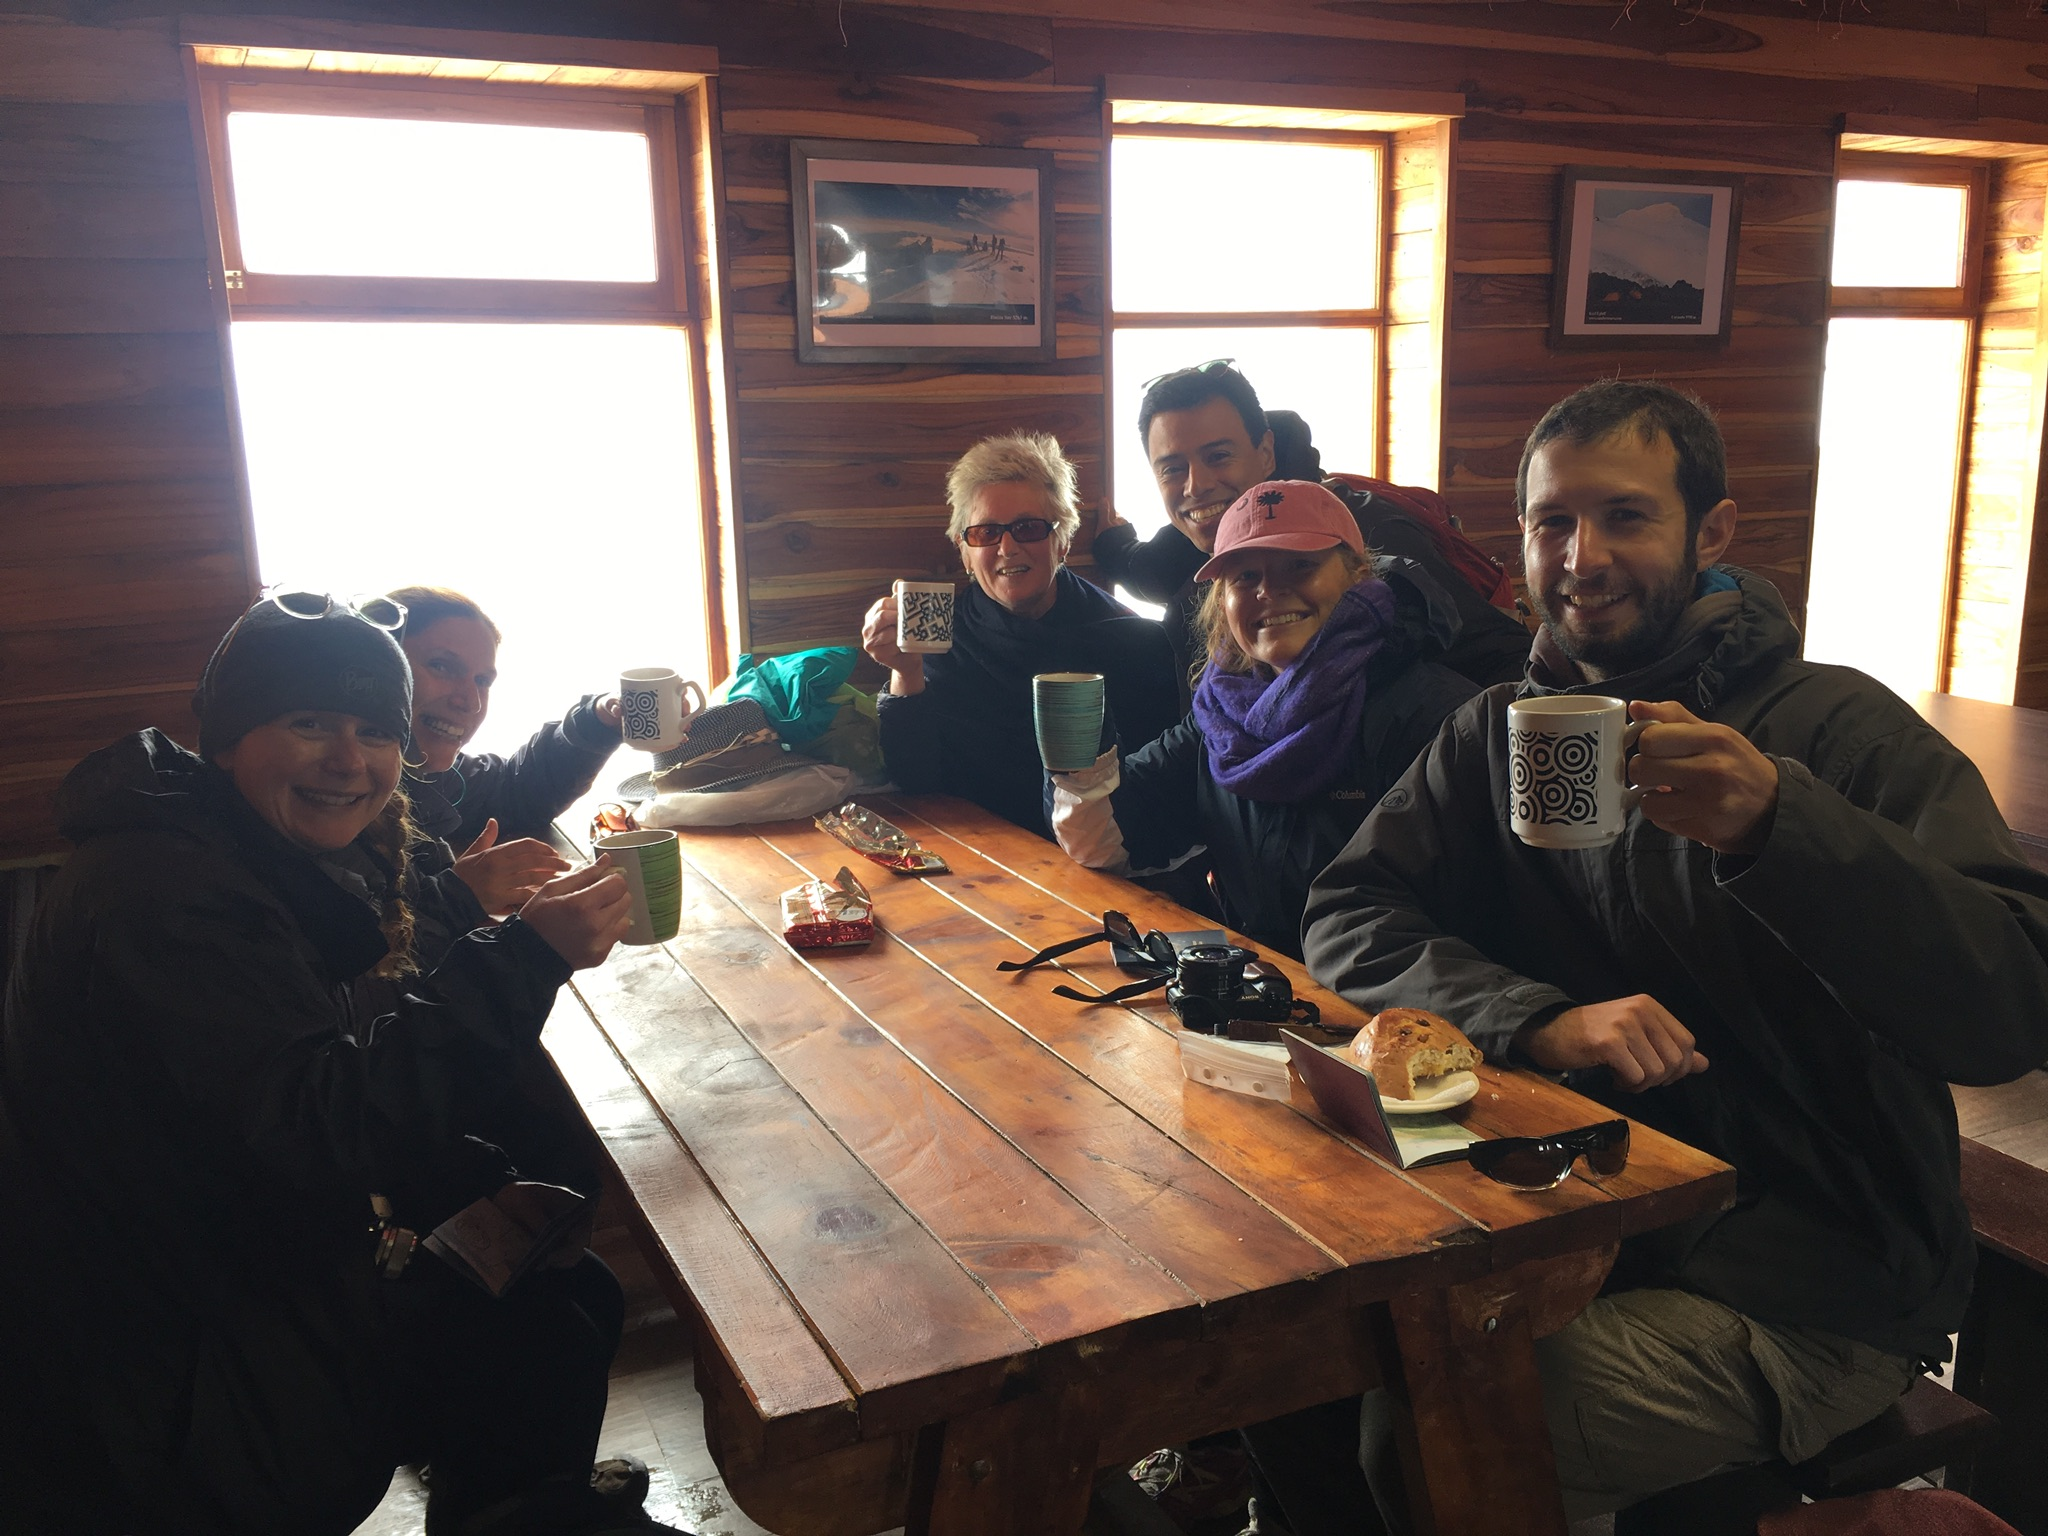 We made into the Refuge! Drinking our hot chocolate and Coca Tea.